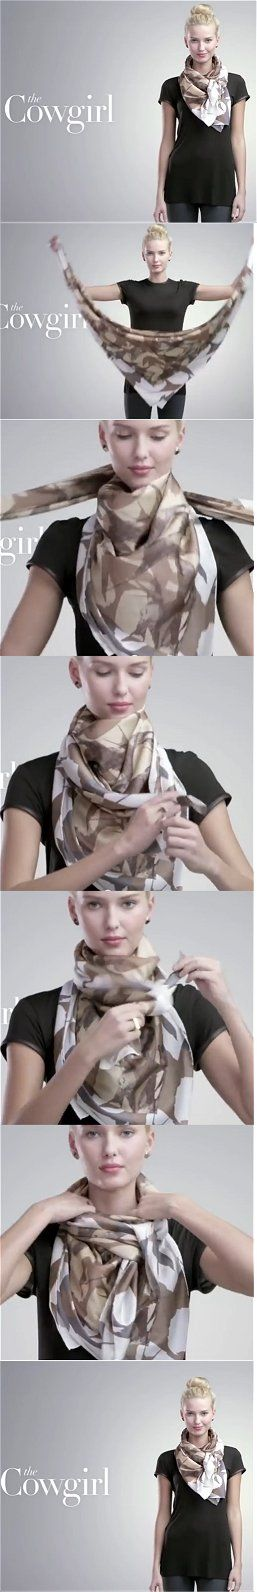 Nordstrom Cowgirl Scarf Tutorial You Tube                                                                                                                                                                                 More